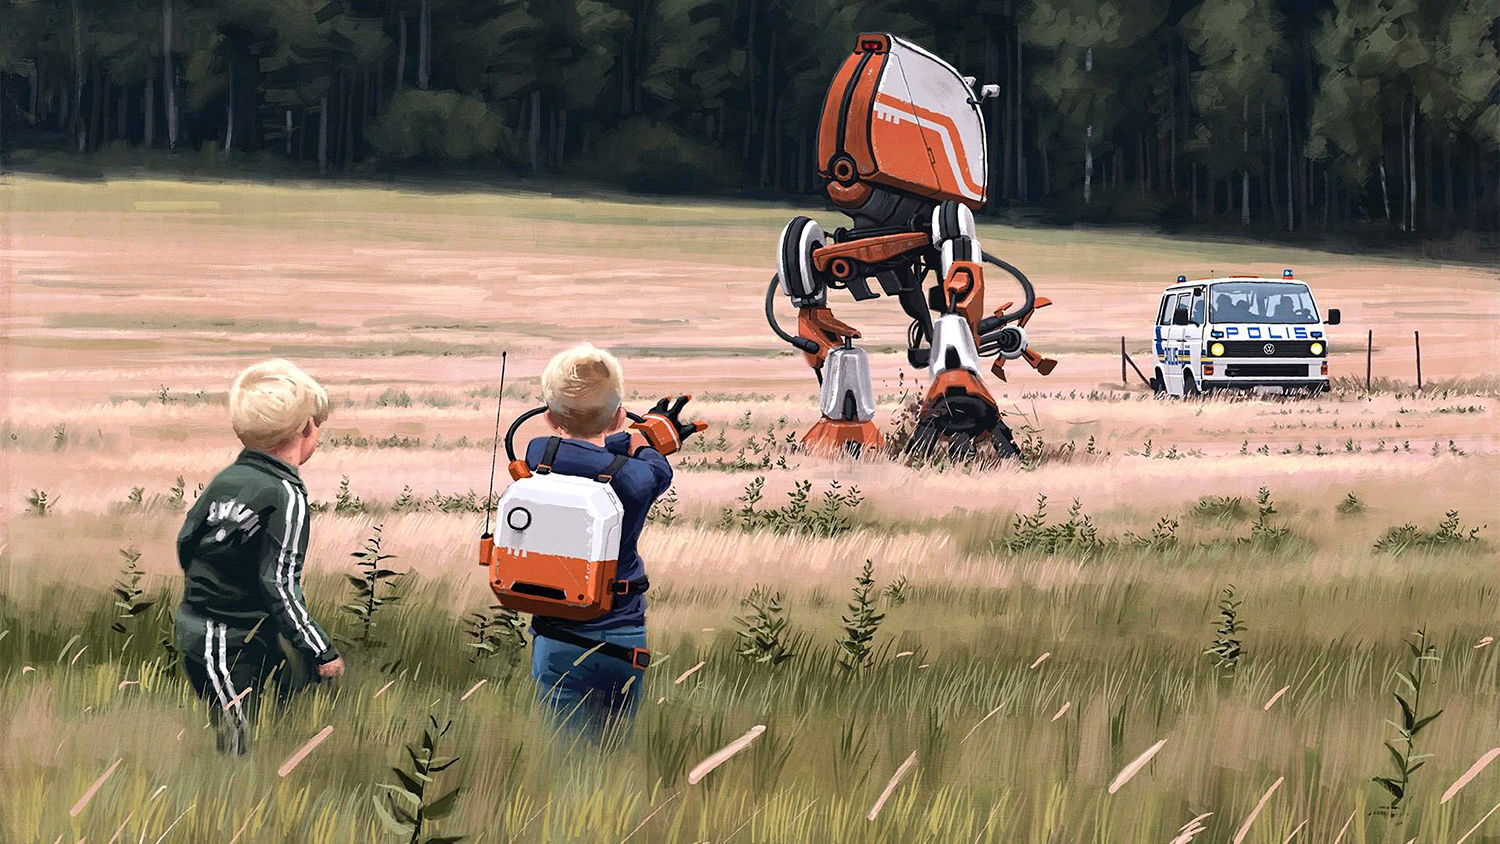 Simon Stalenhag - children and mech